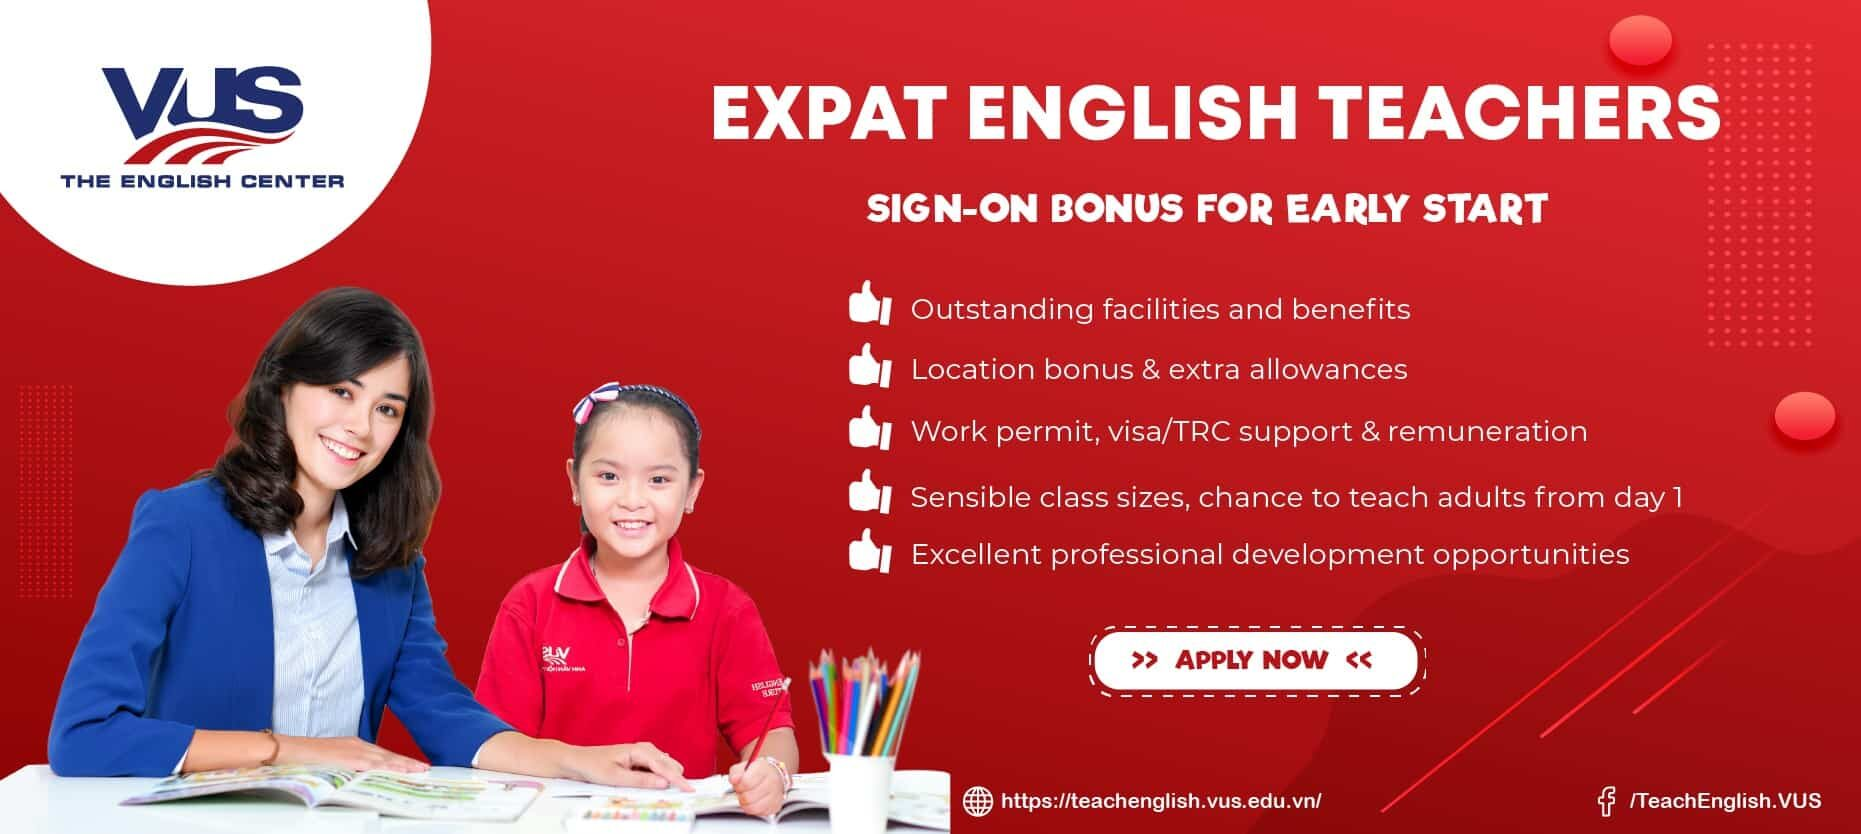 EXPAT ENGLISH TEACHERS for HCMC, Dong Nai, Binh Duong - Sign-on Bonus for October!